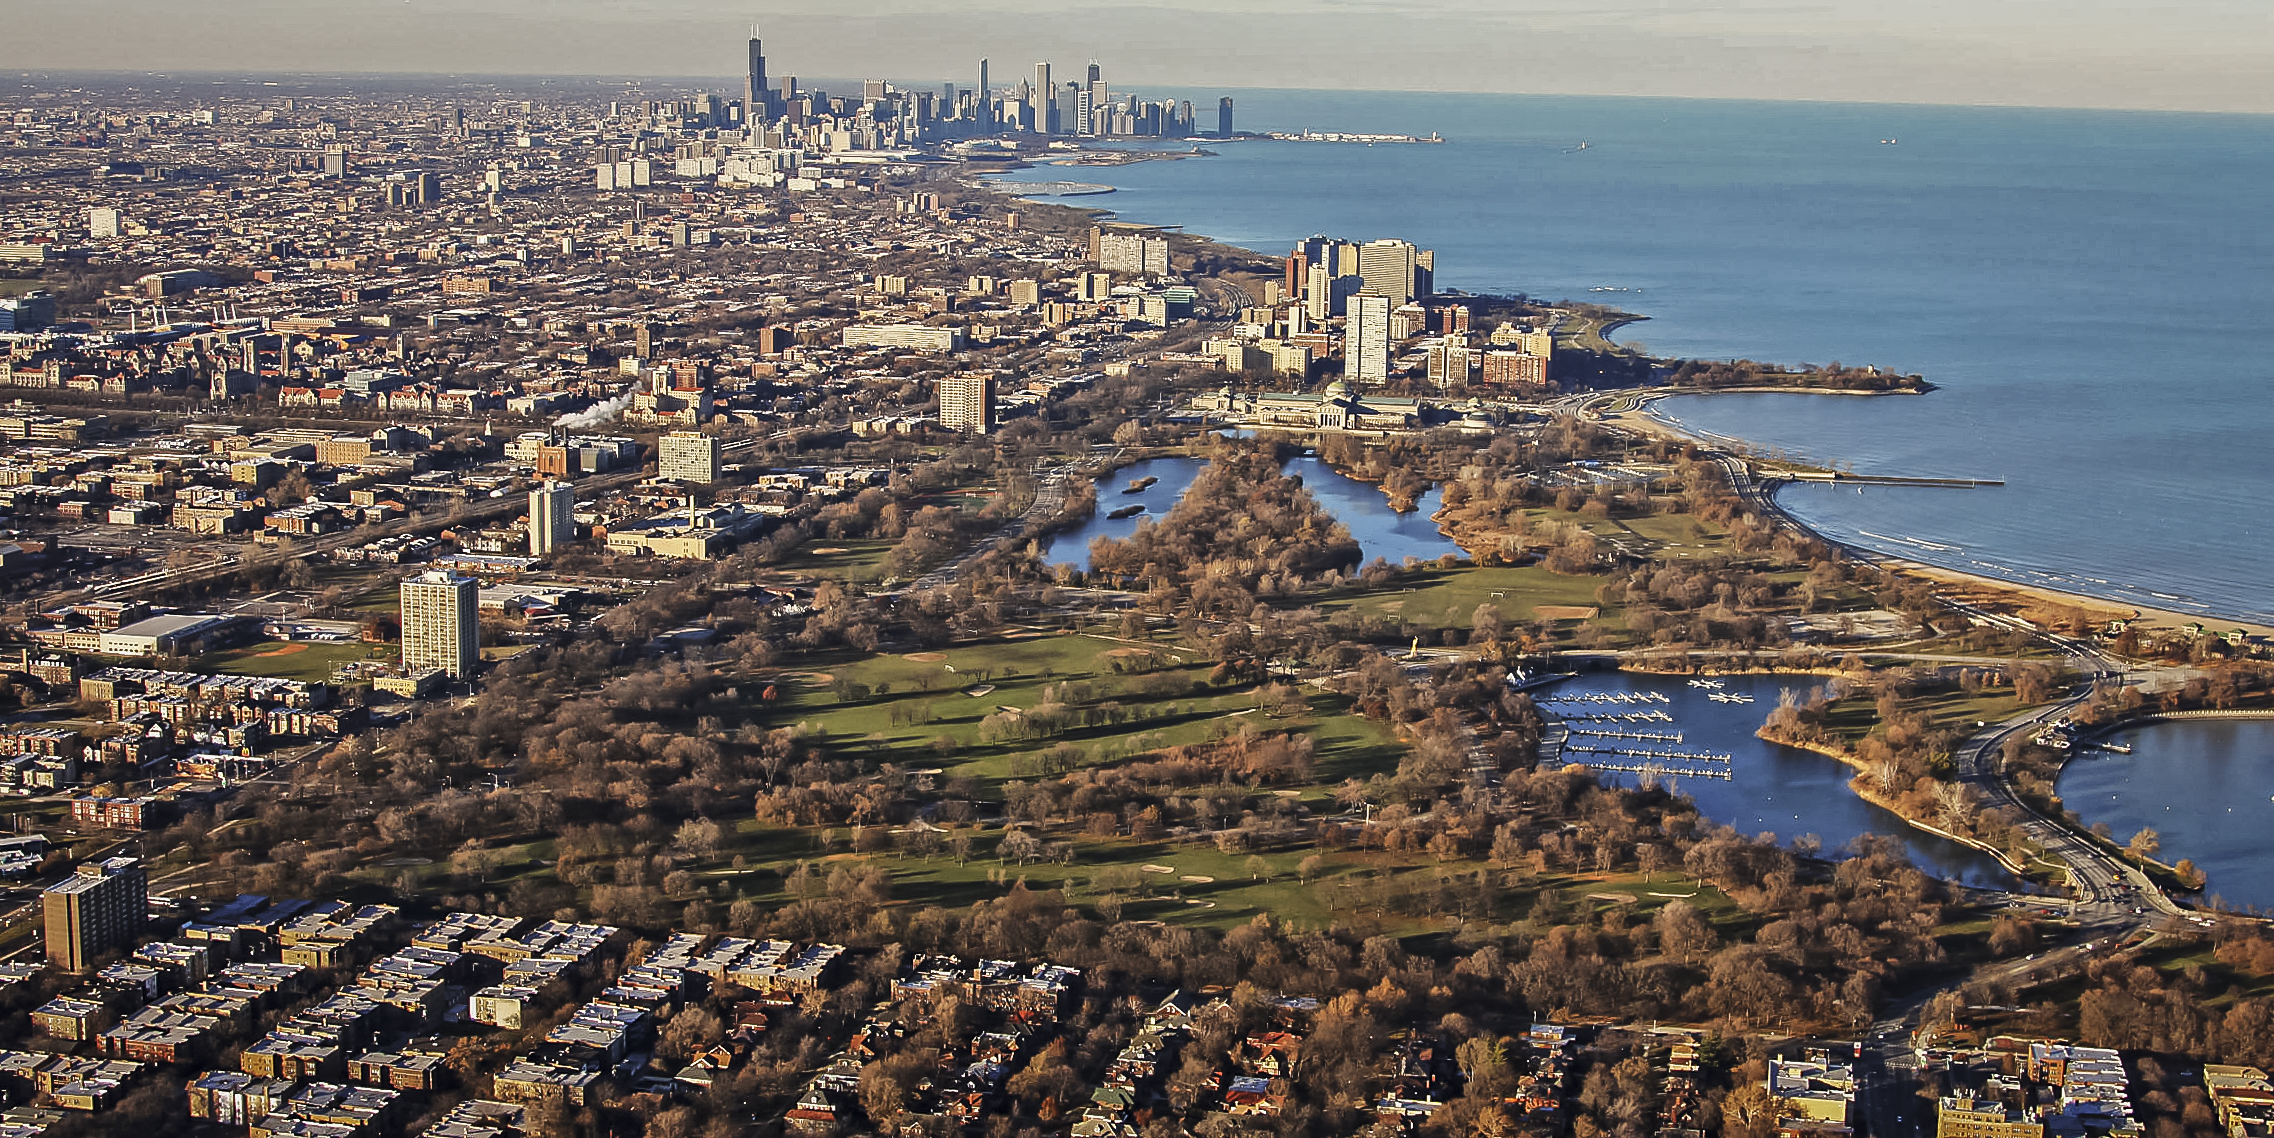 Aerial view of Jackson Park, site of the proposed Obama Presidential Center.